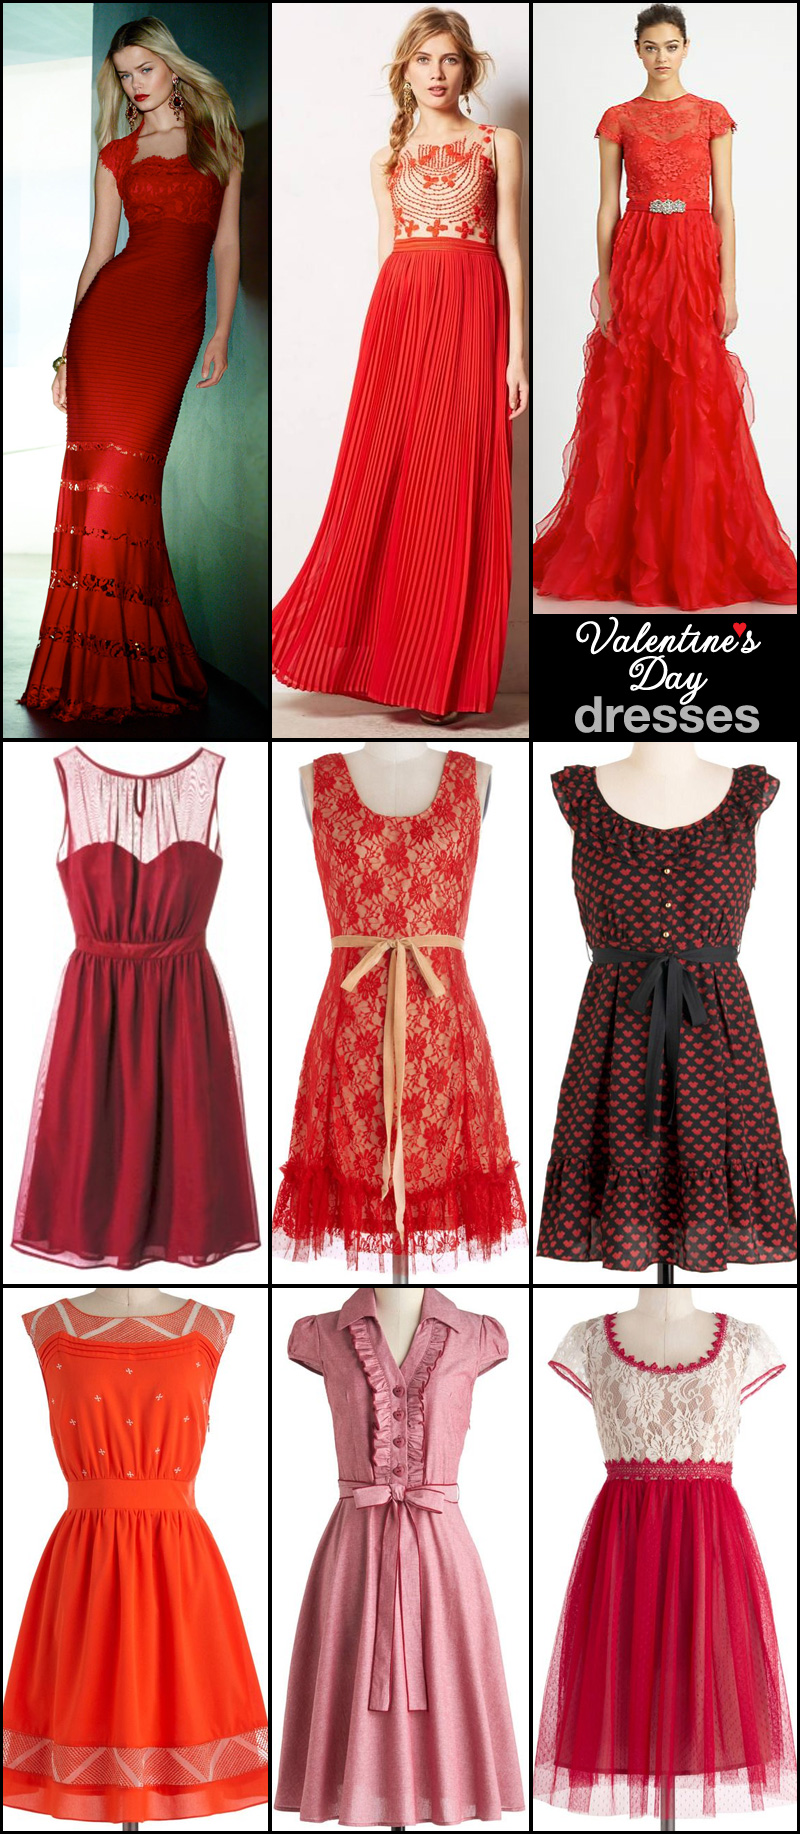 Valentine's Day Dresses in red and black #elegant #formal #casual #reddresses #valentinesdaydresses #lace